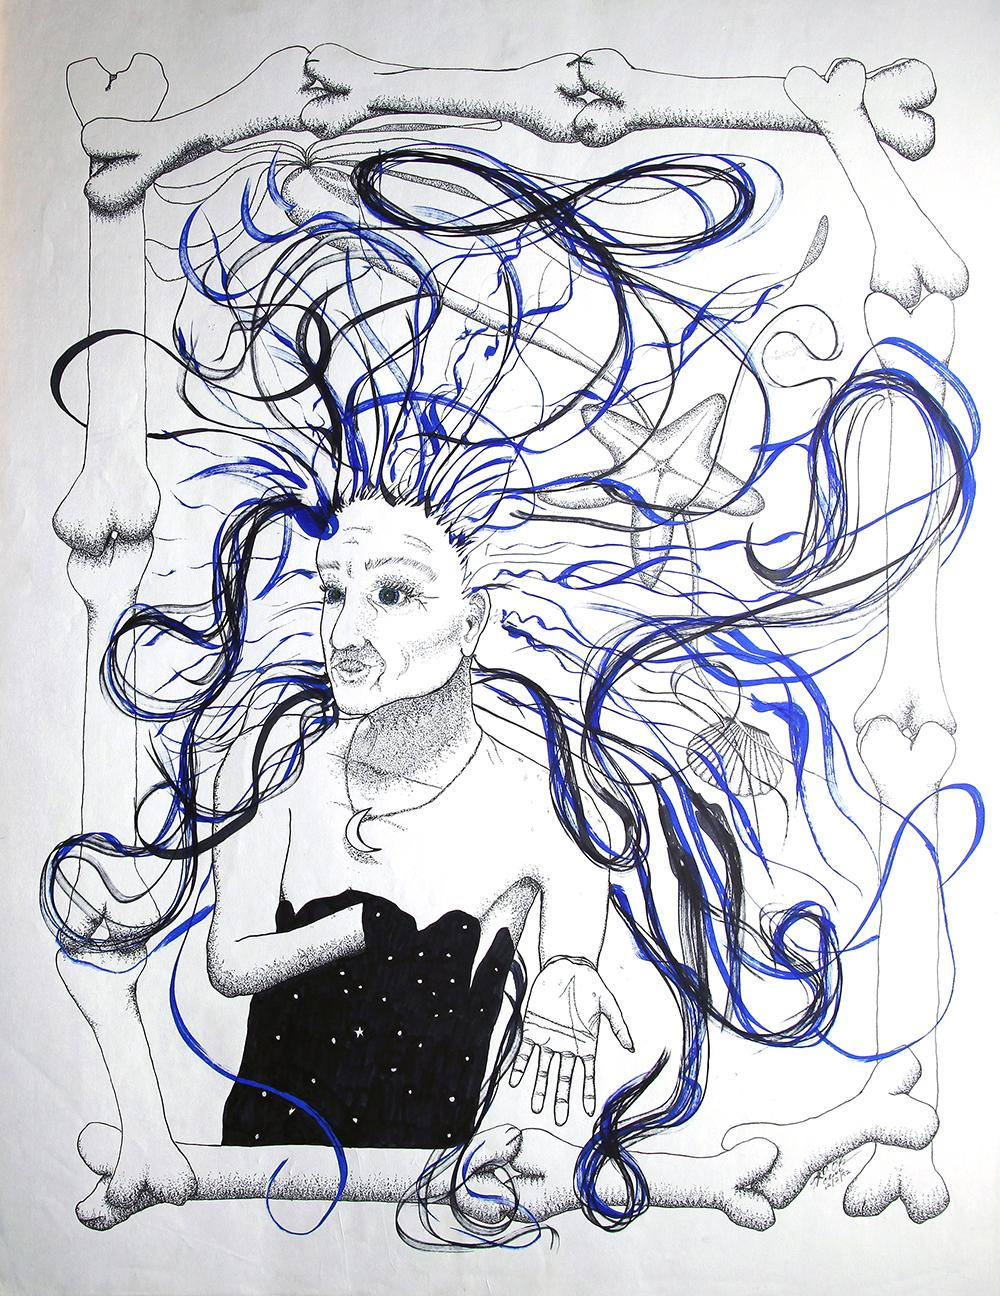 Old woman with crazy hair and sea imagery. Black and white with blue highlight.